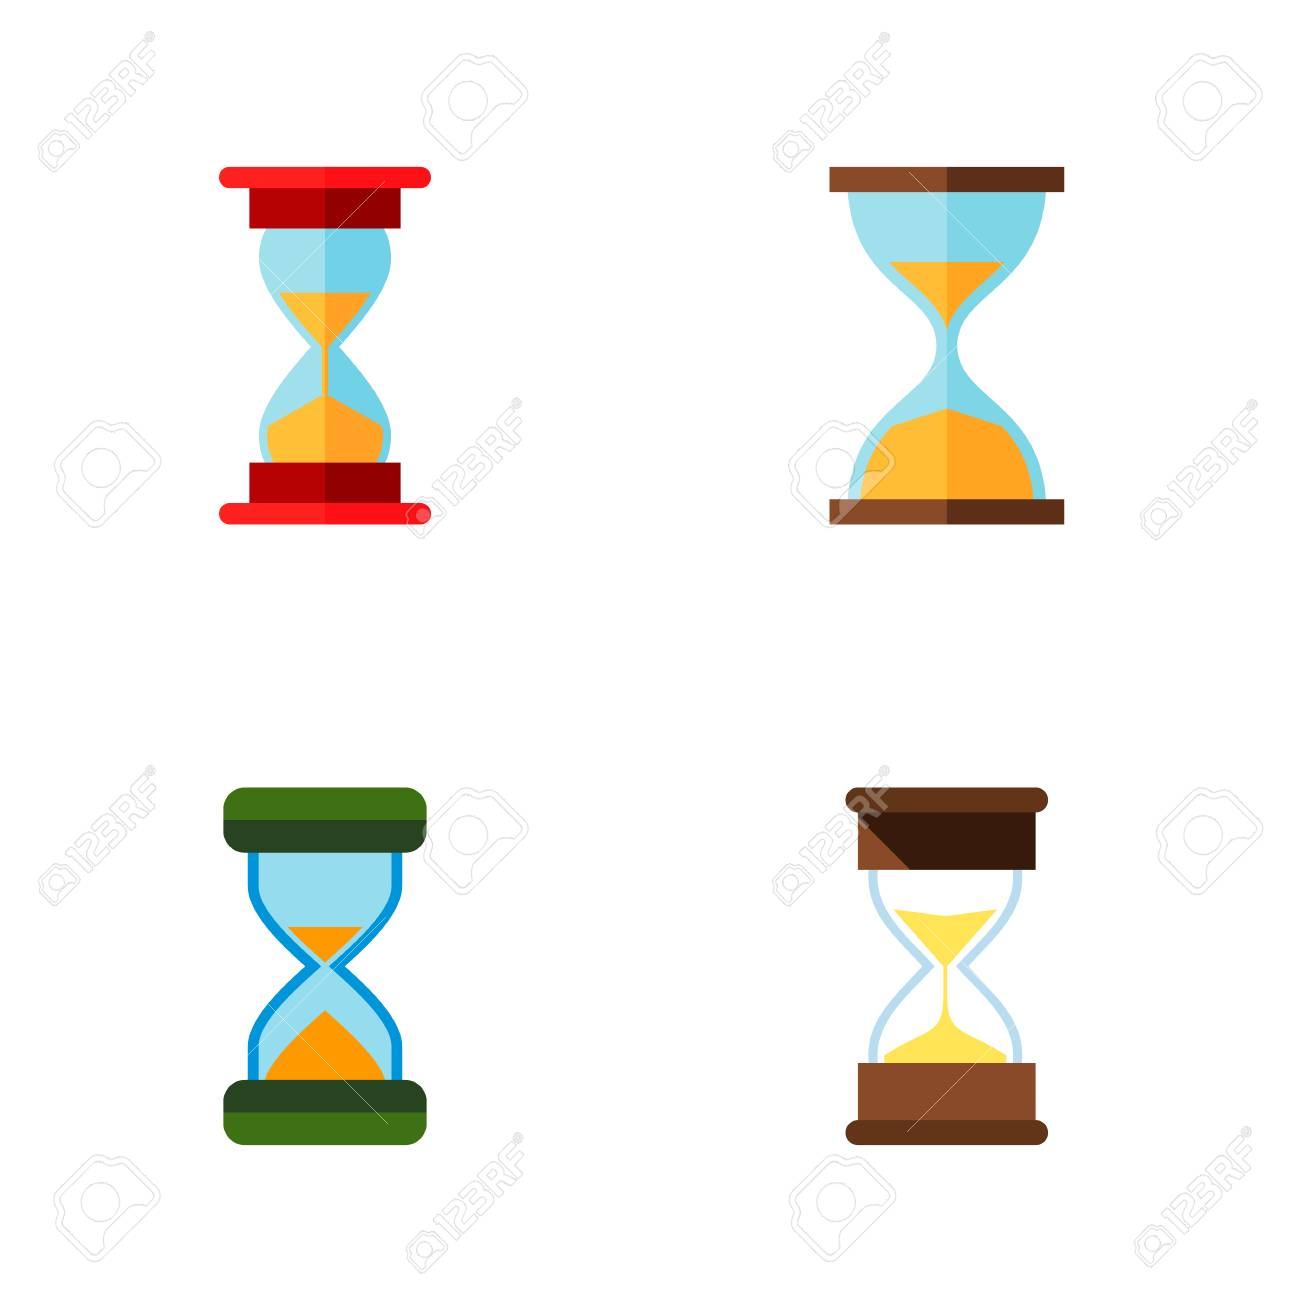 icon flat hourglass set of sand timer instrument loading objects